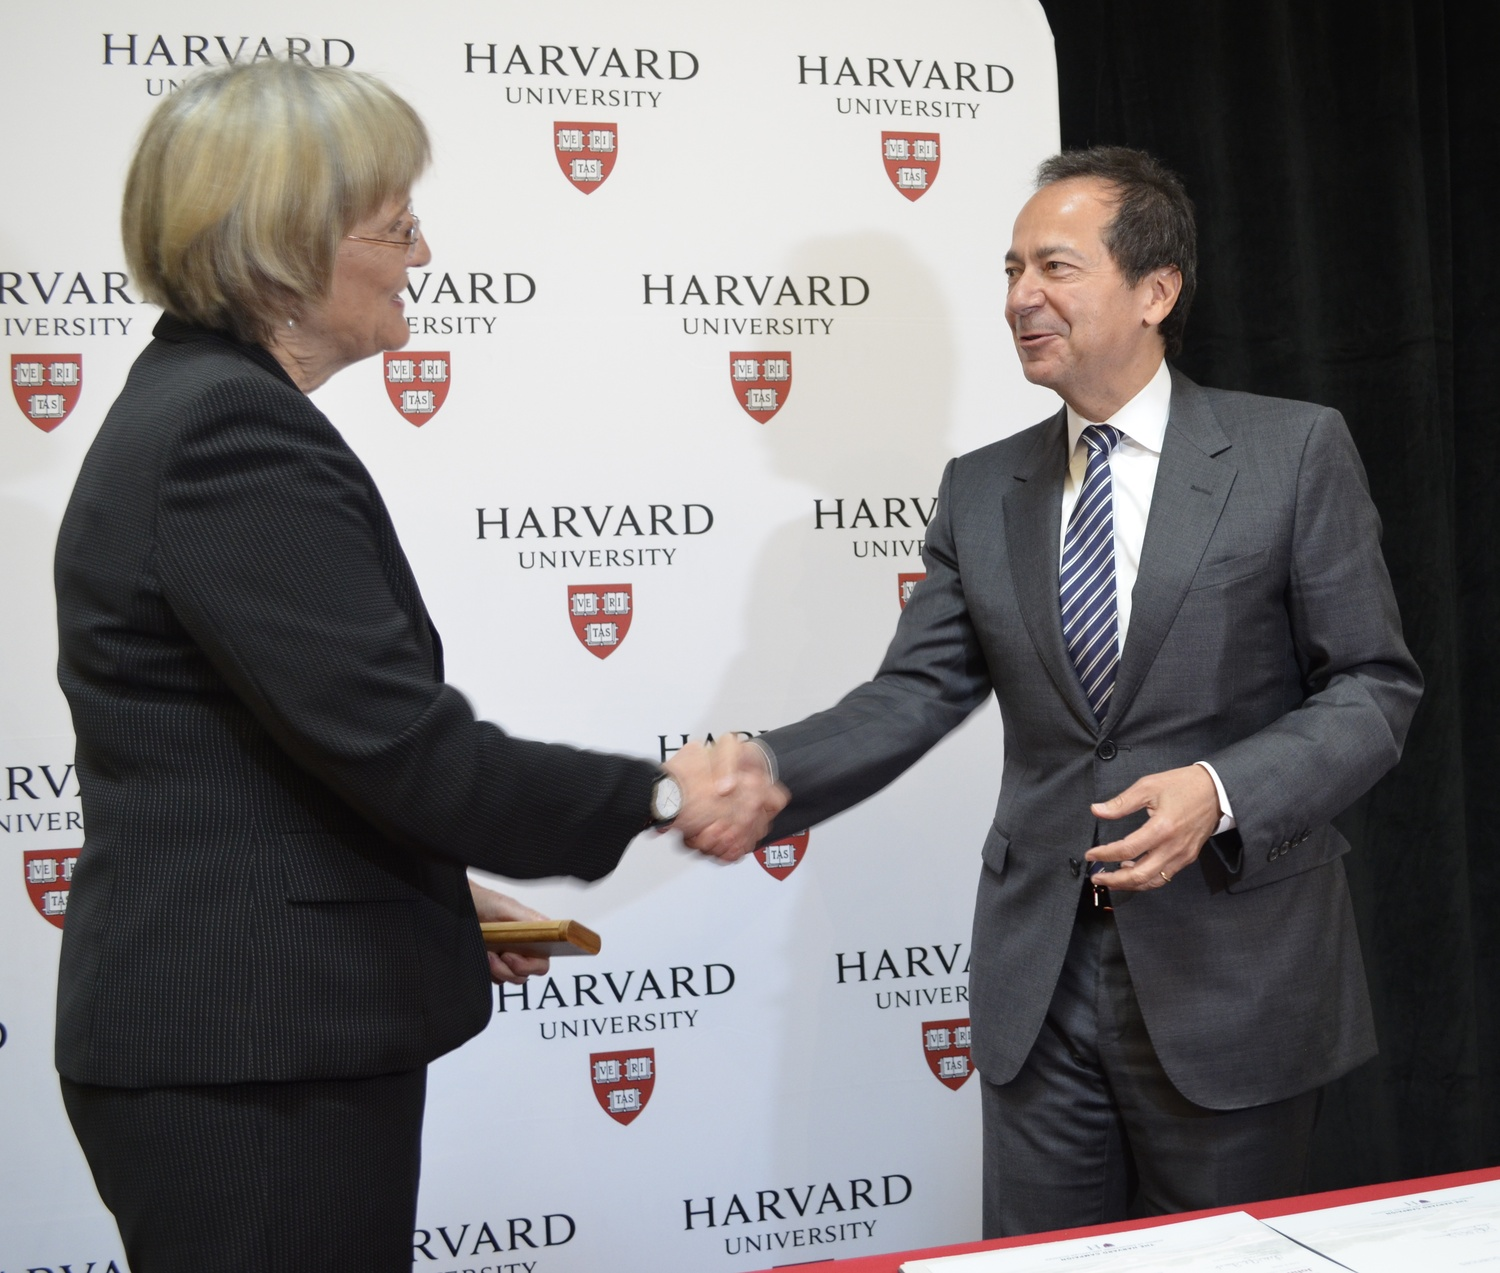 University President Drew G. Faust and hedge fund magnate John A. Paulson shake hands at an event announcing Paulson's $400 million gift to the School of Engineering and Applied Sciences.